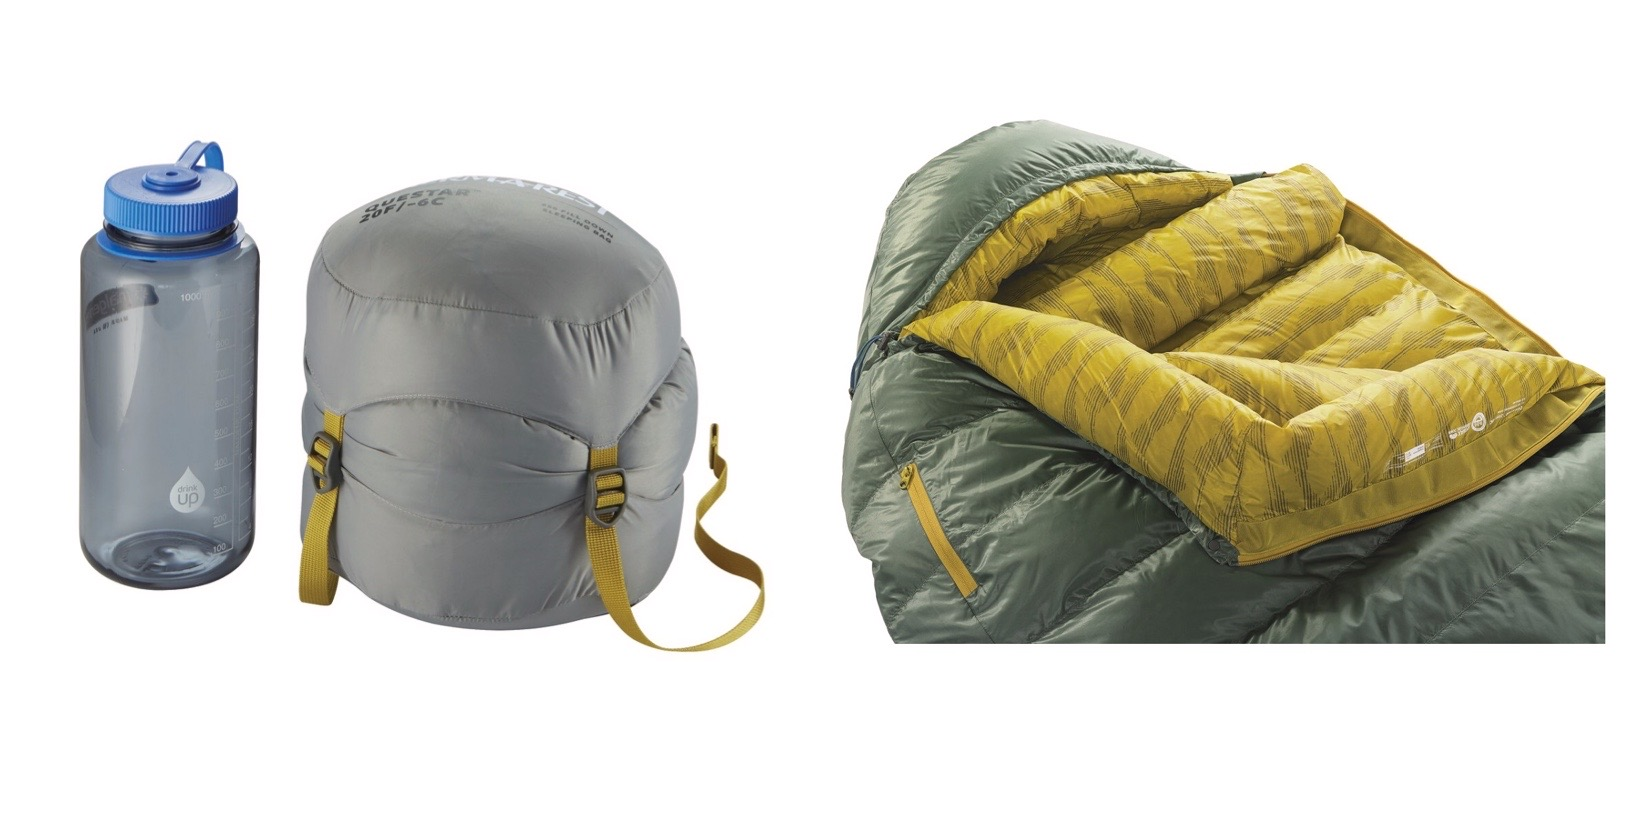 Therm-a-Rest Questar 20F Down Sleeping Bag - Details